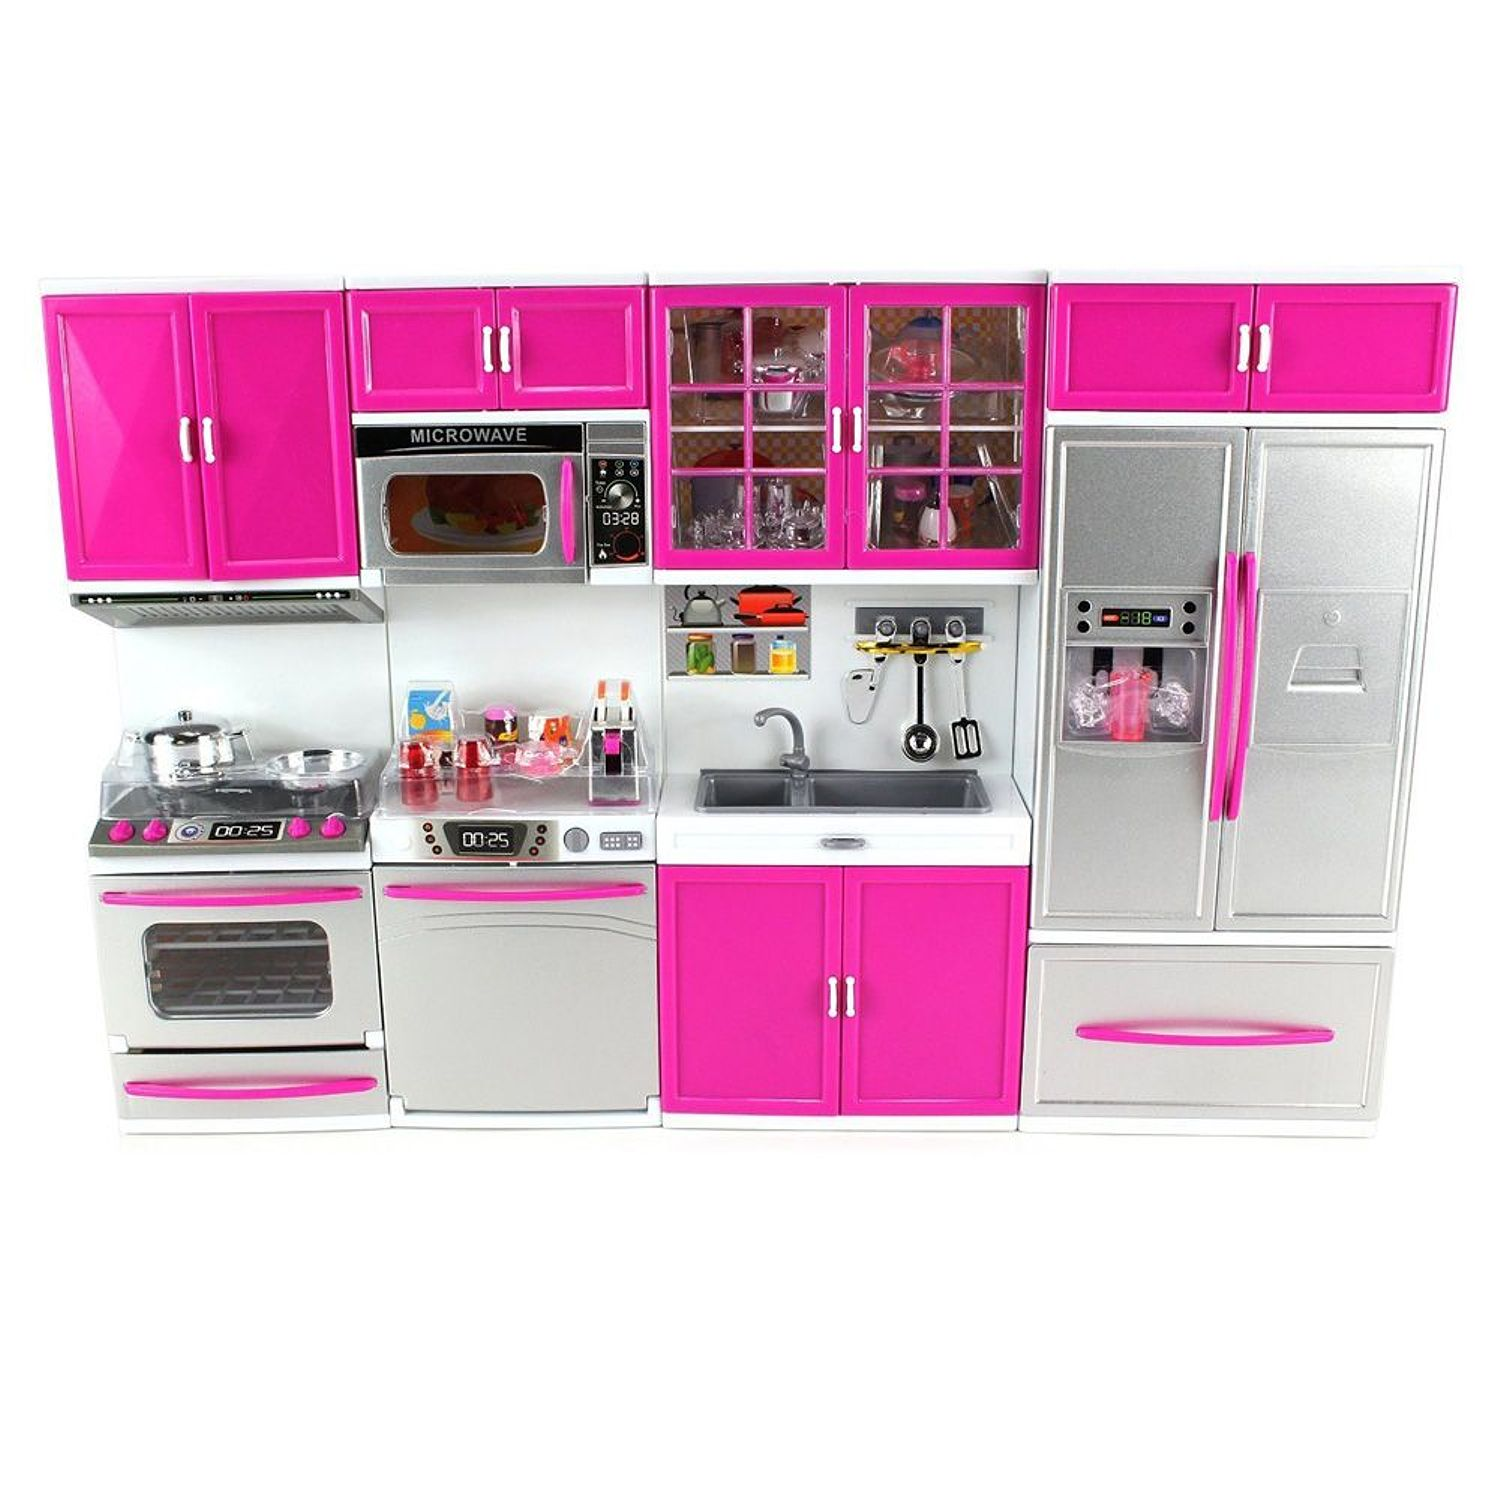 My Modern Kitchen 32 Full Deluxe Kit Battery Operated Kitchen Playset: Refrigerator, Stove, Sink, Microwave (Gift Idea)